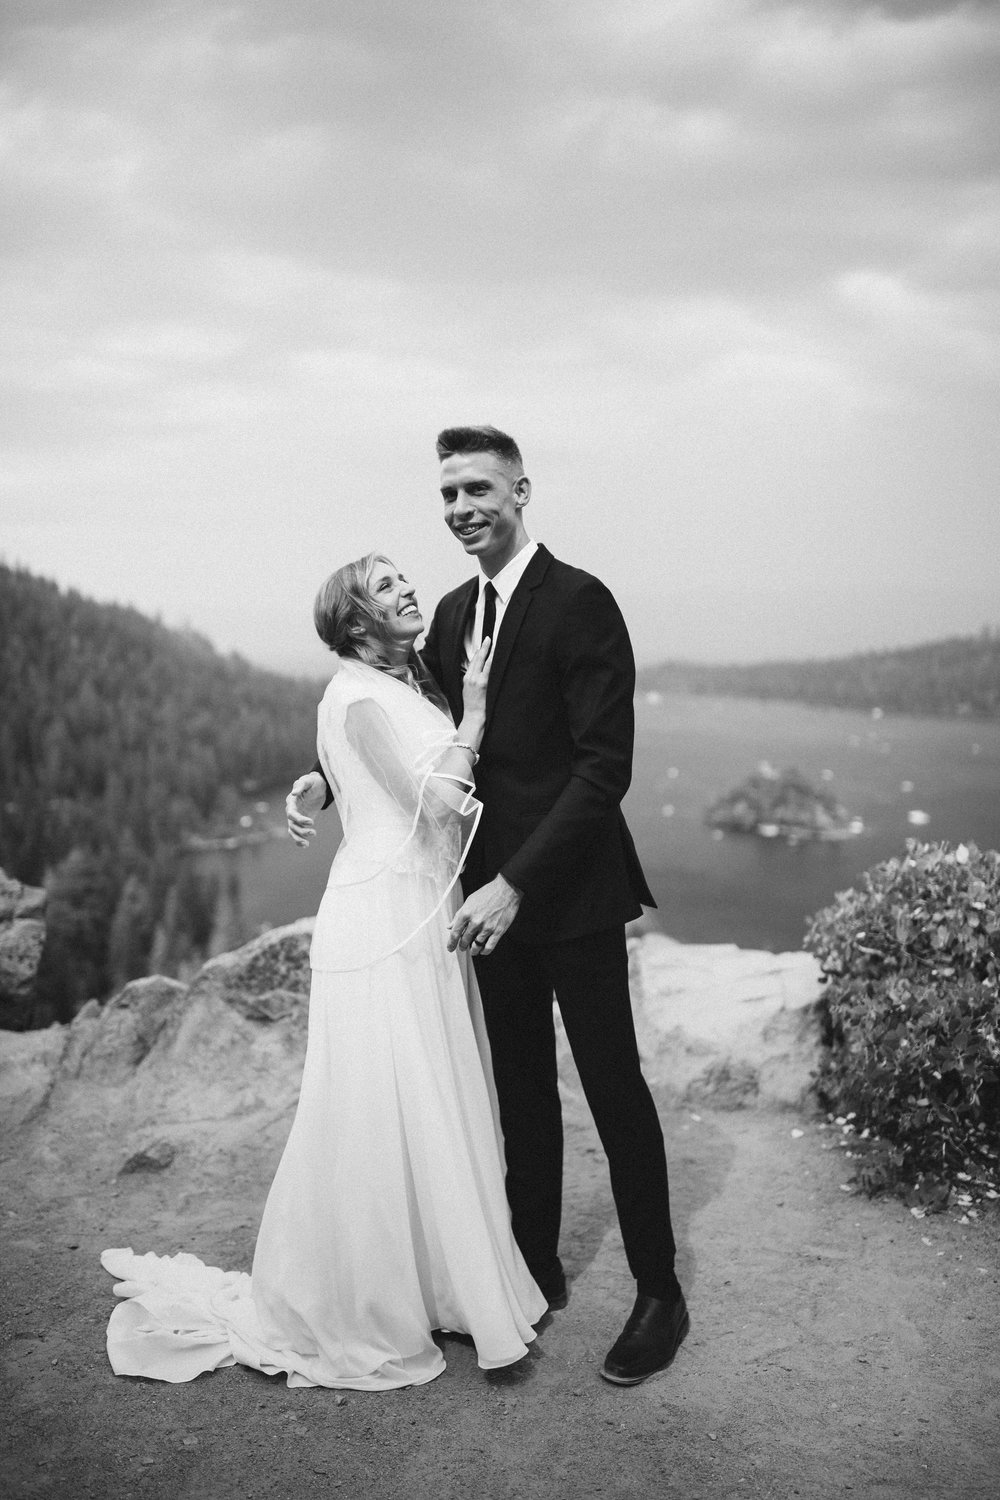 0M7A0772vildphotography-adventurewedding-adventurouswedding-tahoewedding-laketahoewedding-adventureelopement-laketahoeweddingphotographer-wedding-photographer-weddingphotographer-Chase-Sam.jpg